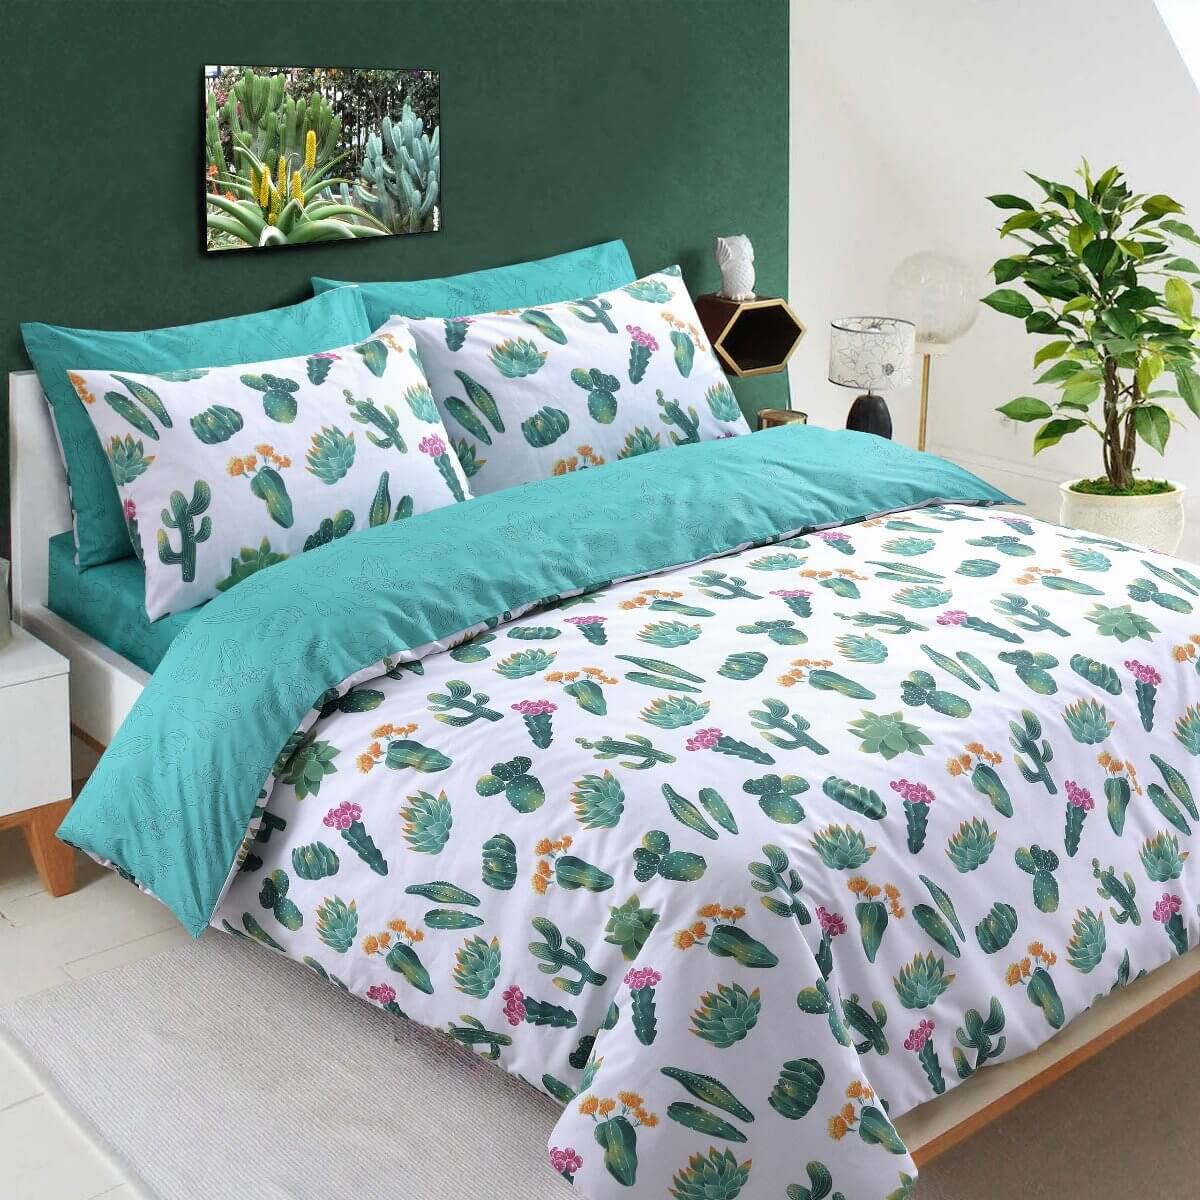 Tropical Cactus Bedding - Reversible Duvet Cover and Pillowcase Set